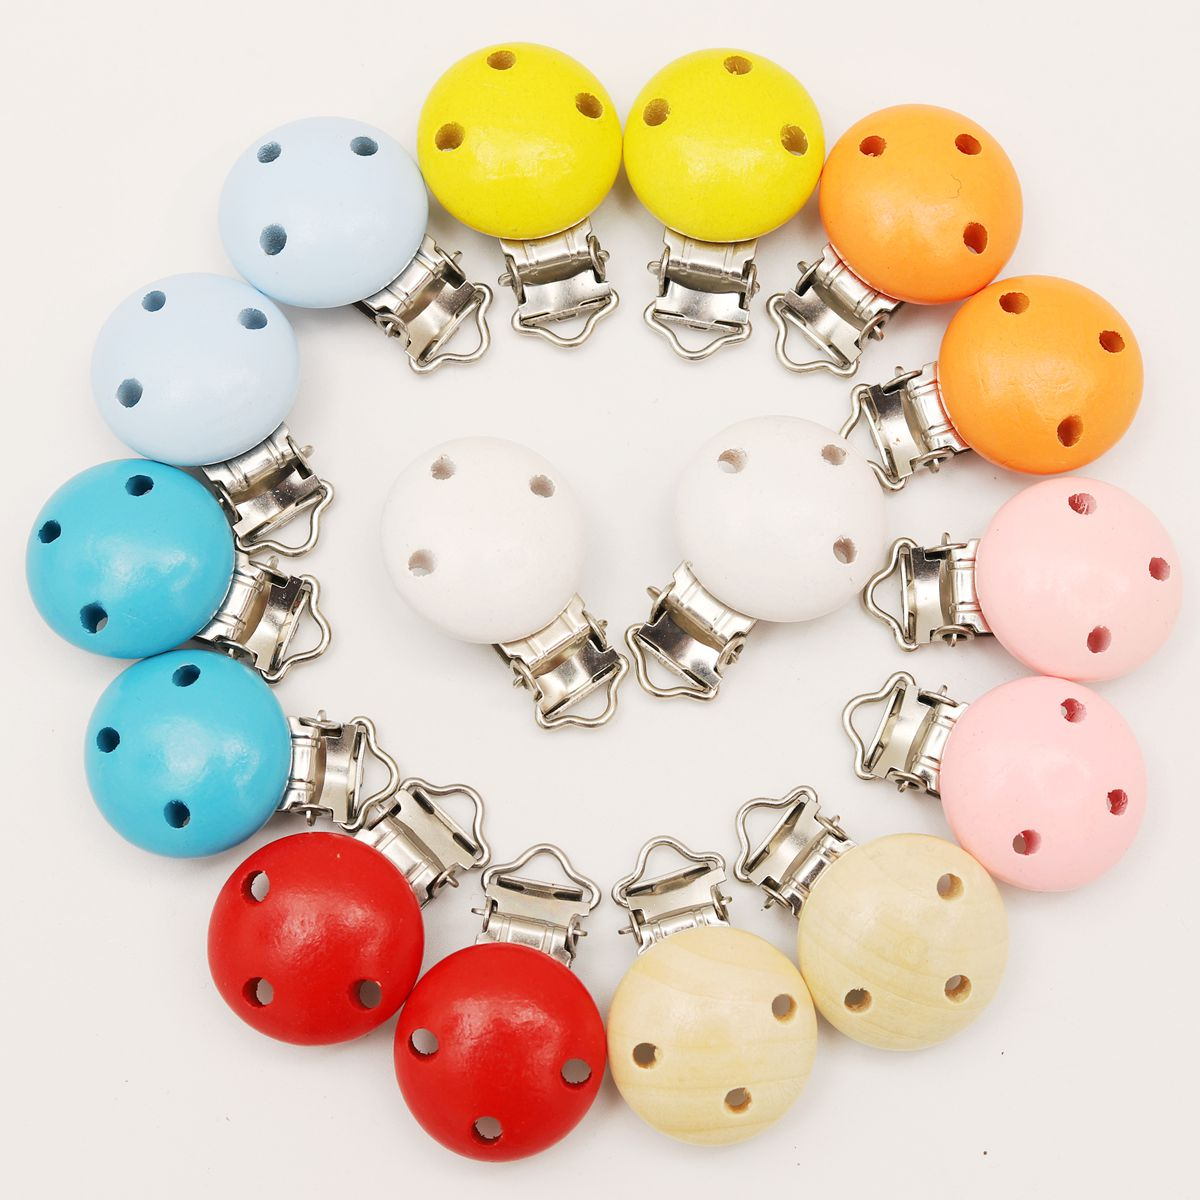 5Pcs New Round Shaped Pacifier Clip Wooden Bead Baby Teether Wood Teething Accessories Clip Nipple Clasps Toy DIY Bead Tool